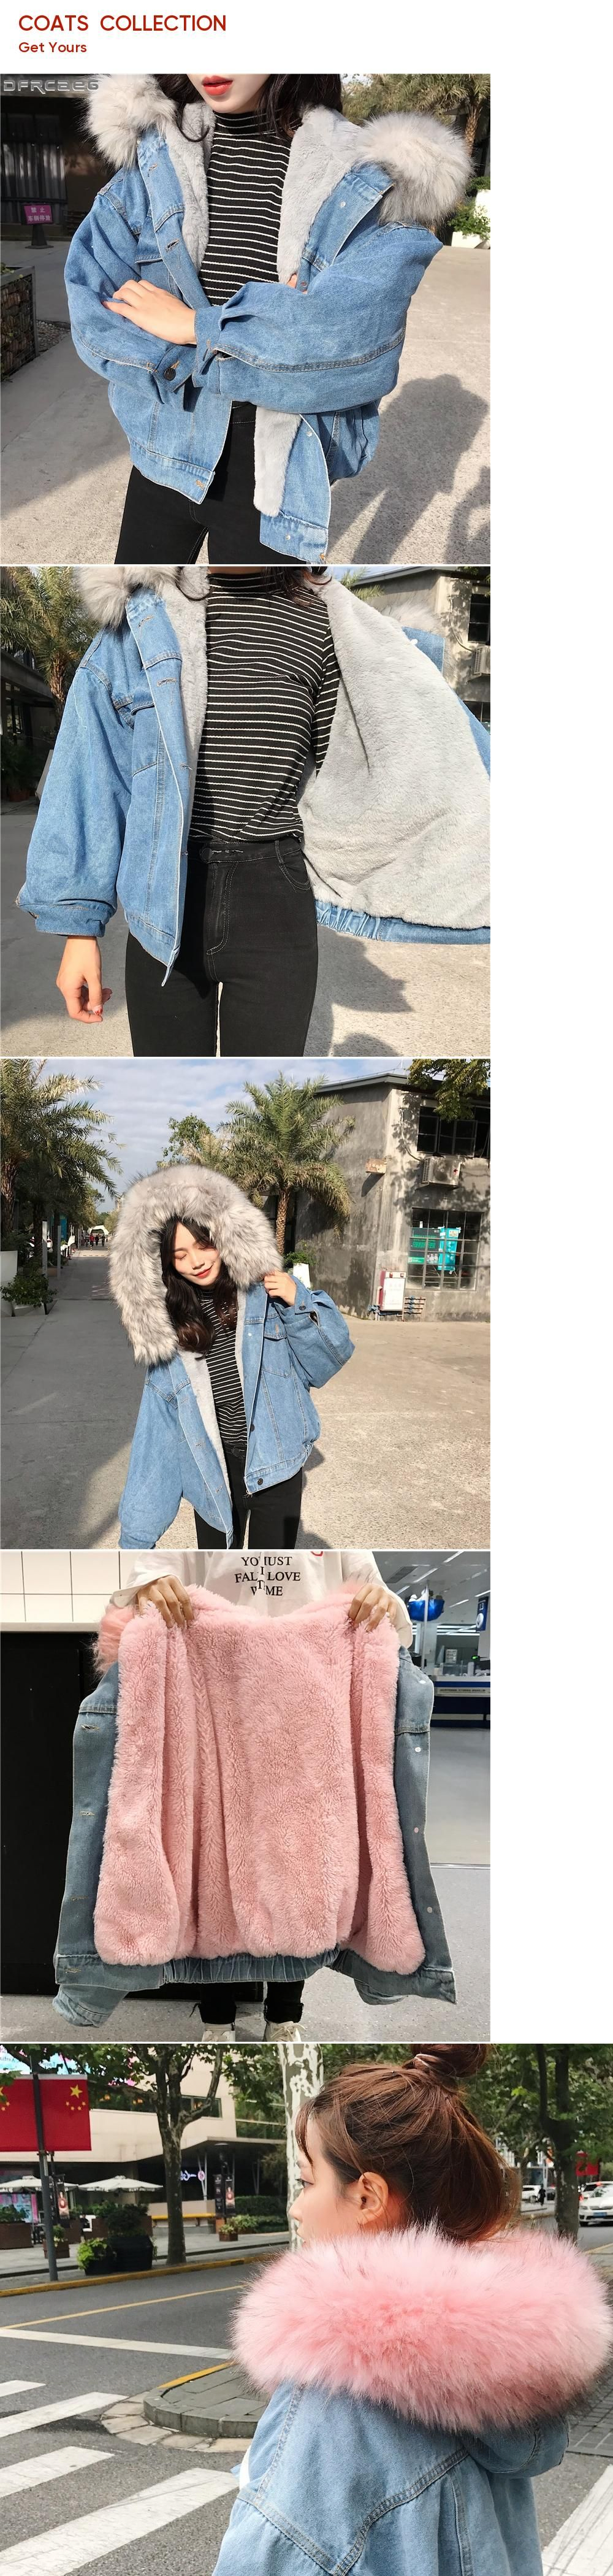 Oversize Denim Jacket - Trf - Outerwear - Woman  Zara France Oversize Denim Jacket - Trf - Outerwear - Woman  Zara France Woman Denim Jacket oversized denim jacket hoodie womans